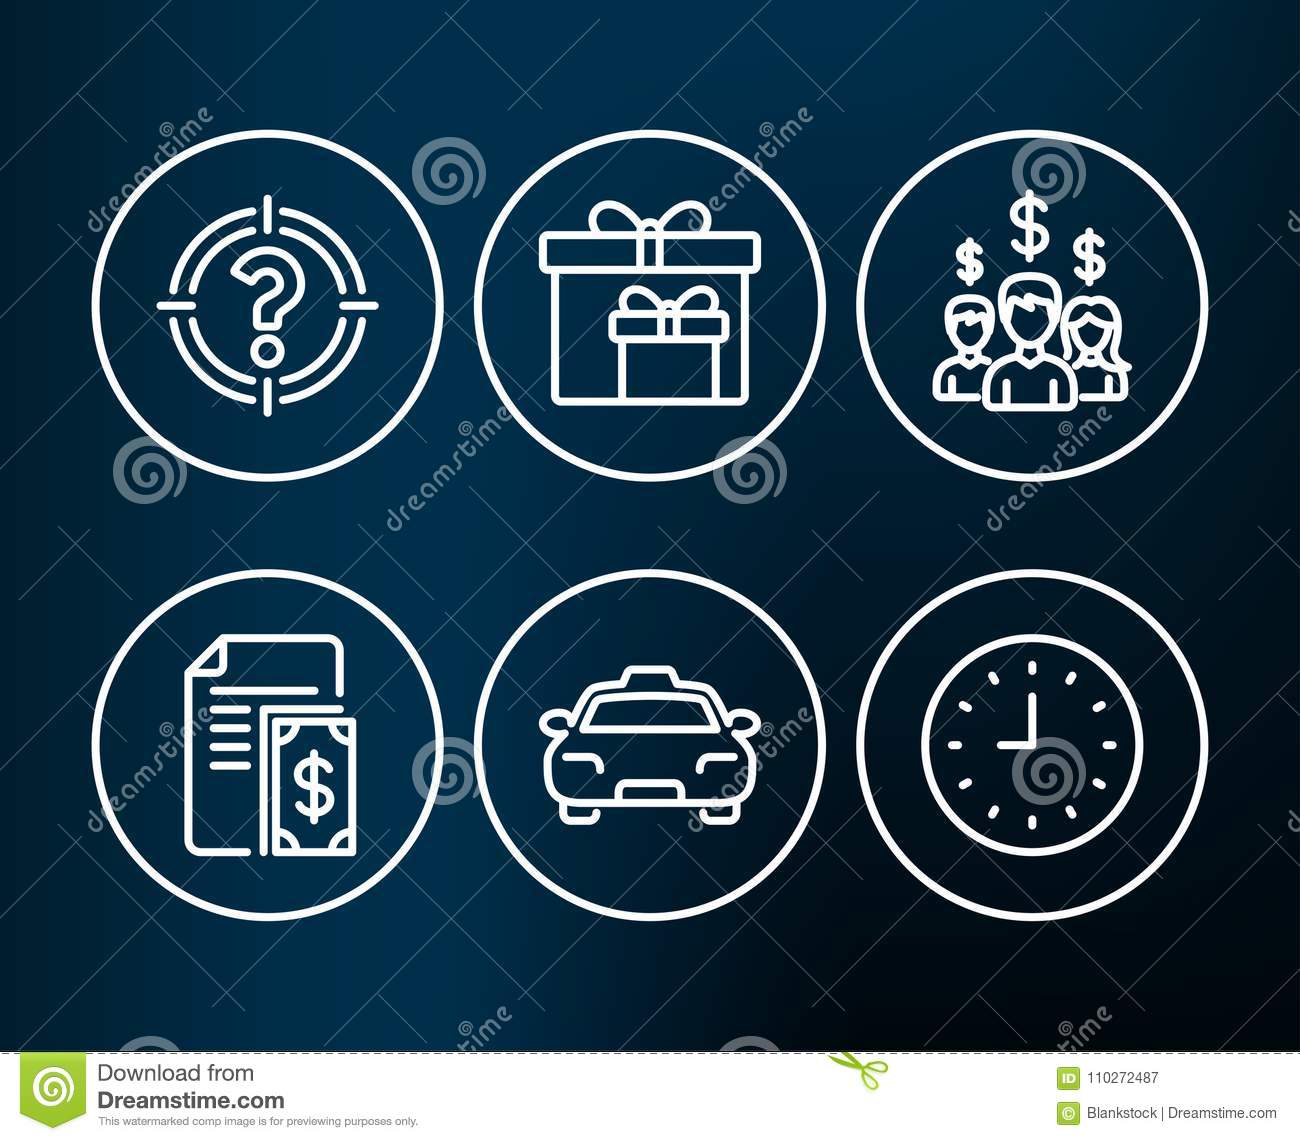 Salary Employees Taxi And Clock Signs Aim With Question Mark Birthday Gifts Cash Money People Earnings Passengers Transport Time Or Watch